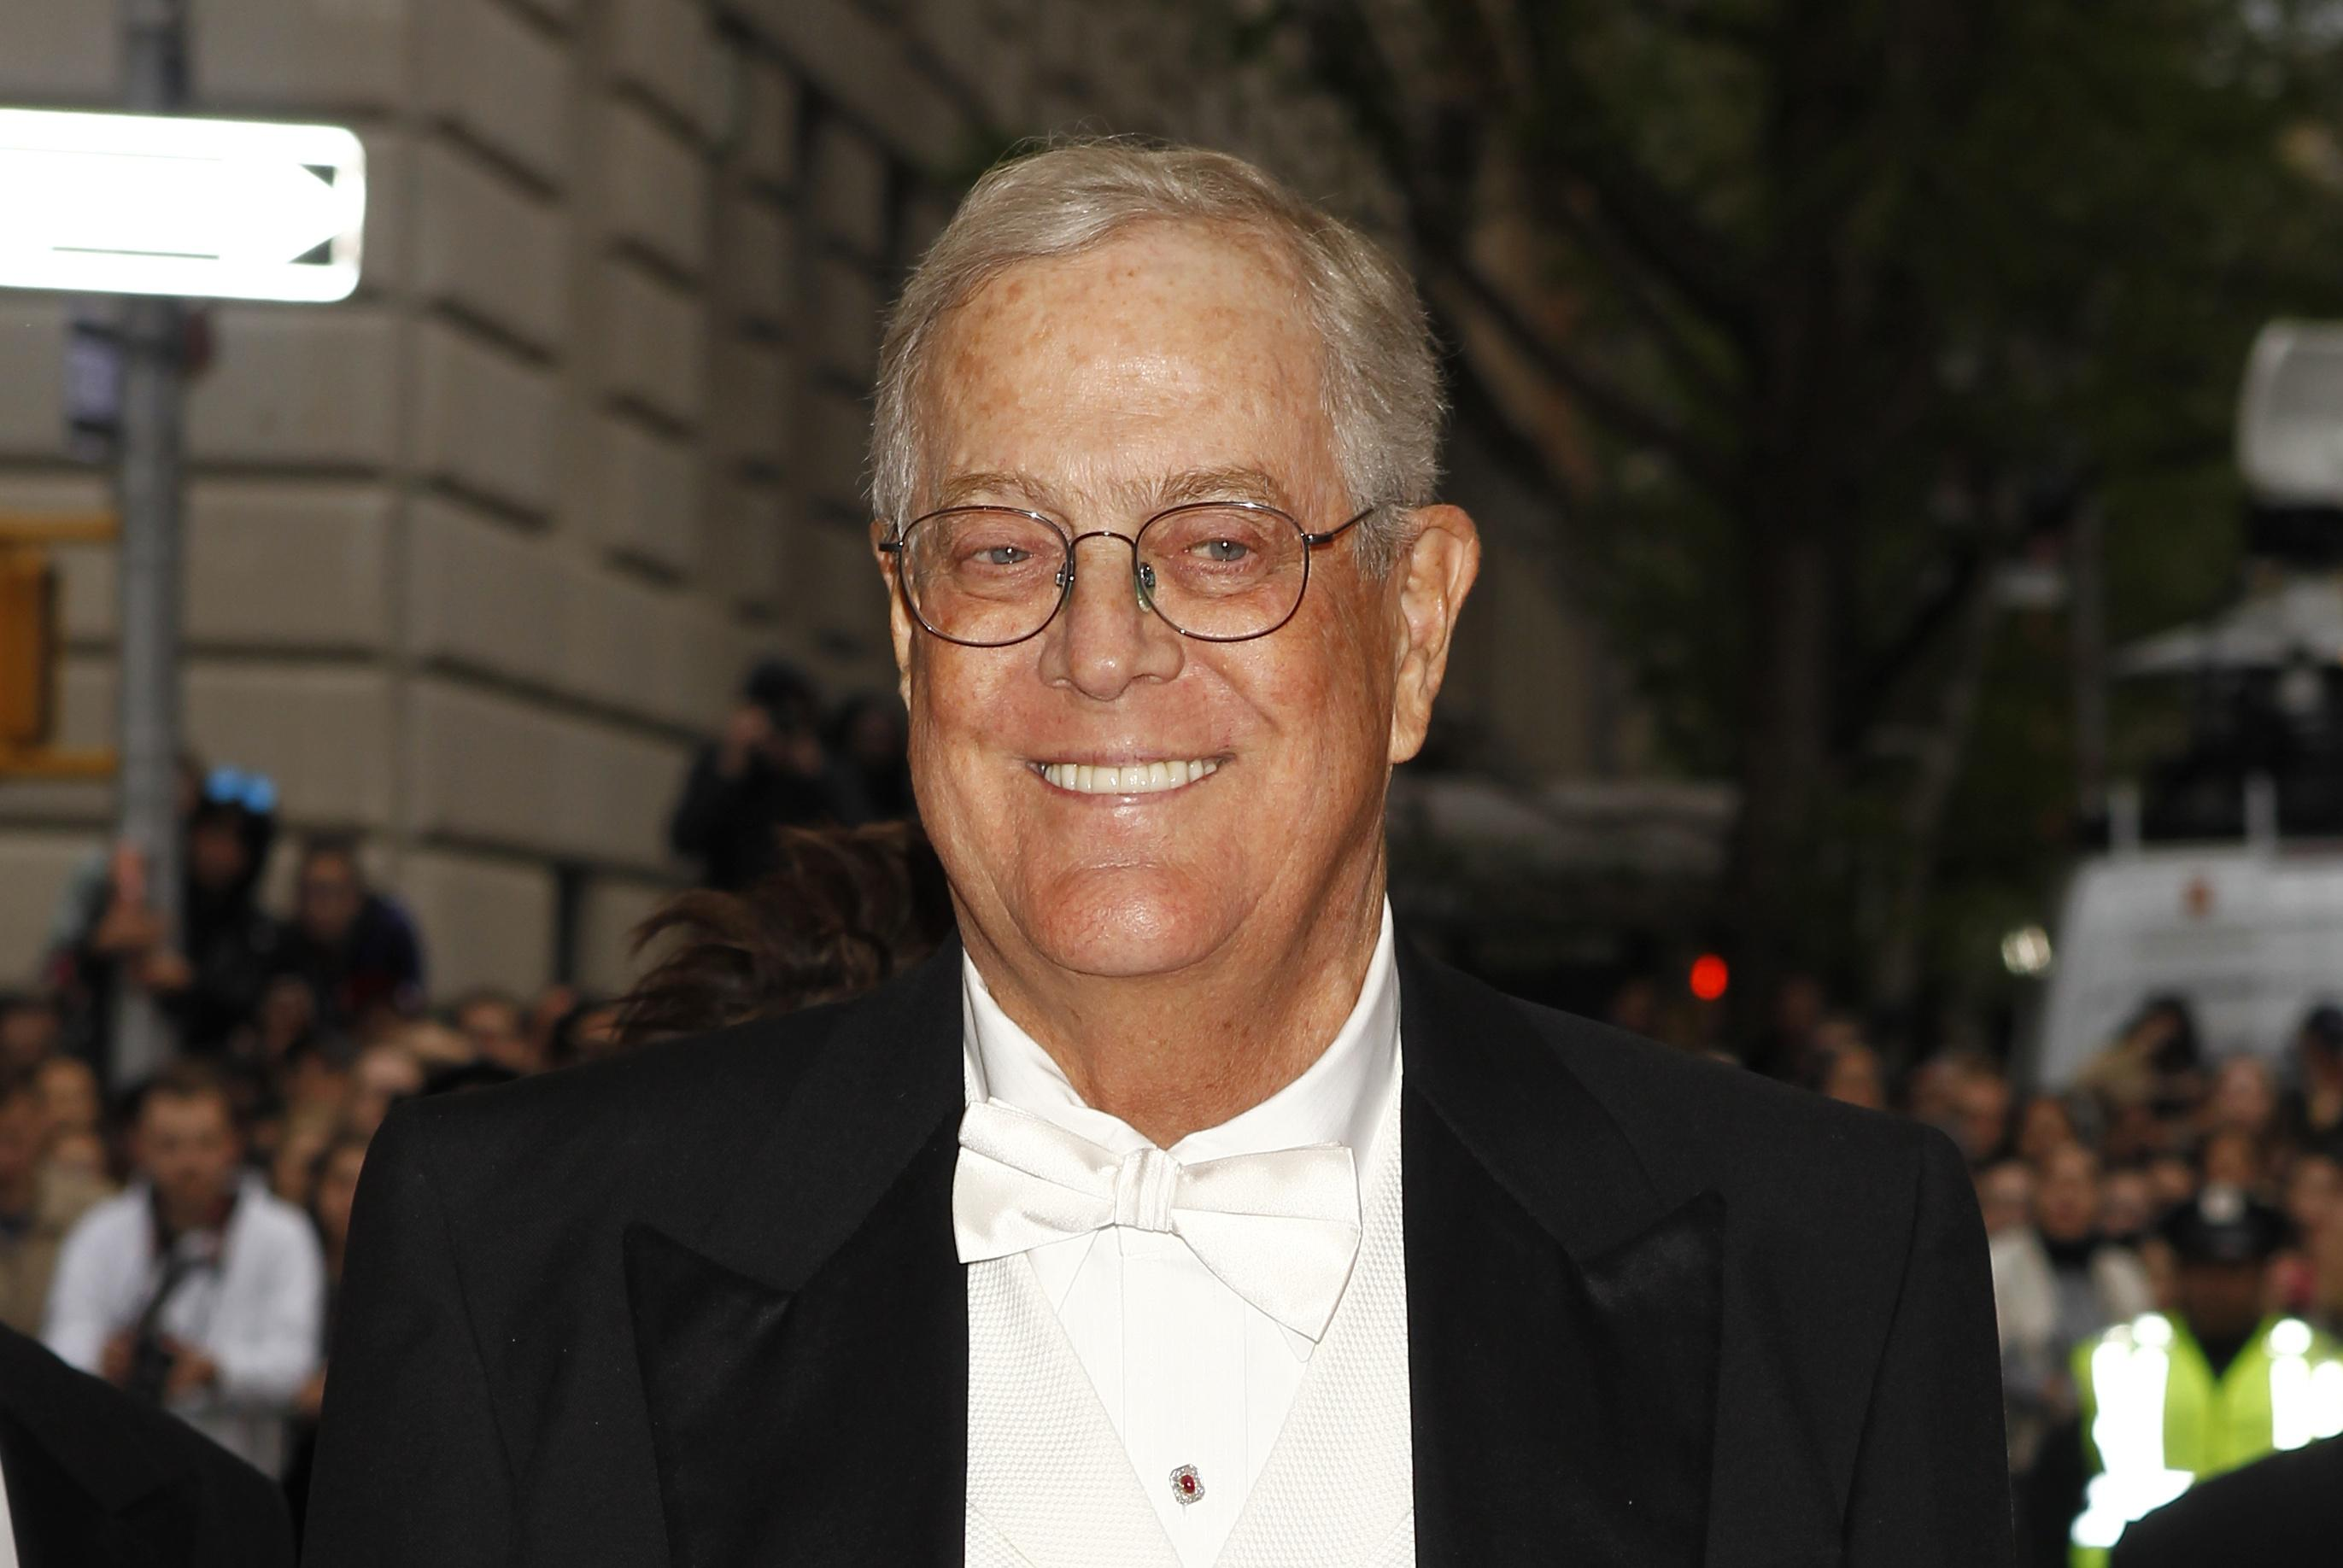 David Koch stepping down from Koch Industries